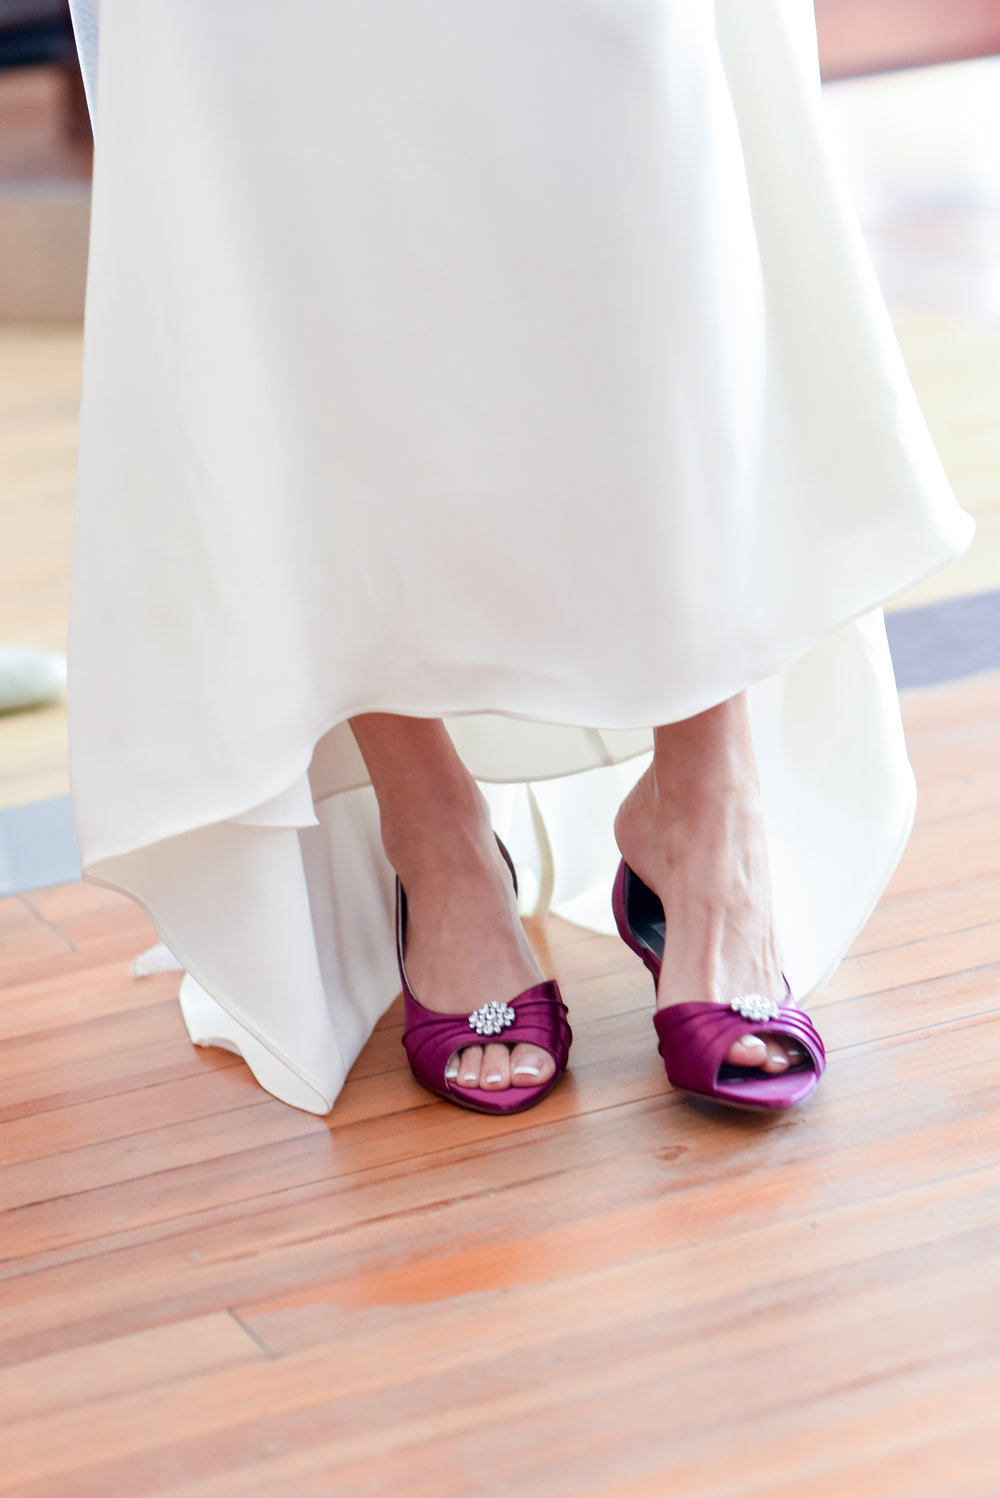 asheville-wedding-shoes.jpg